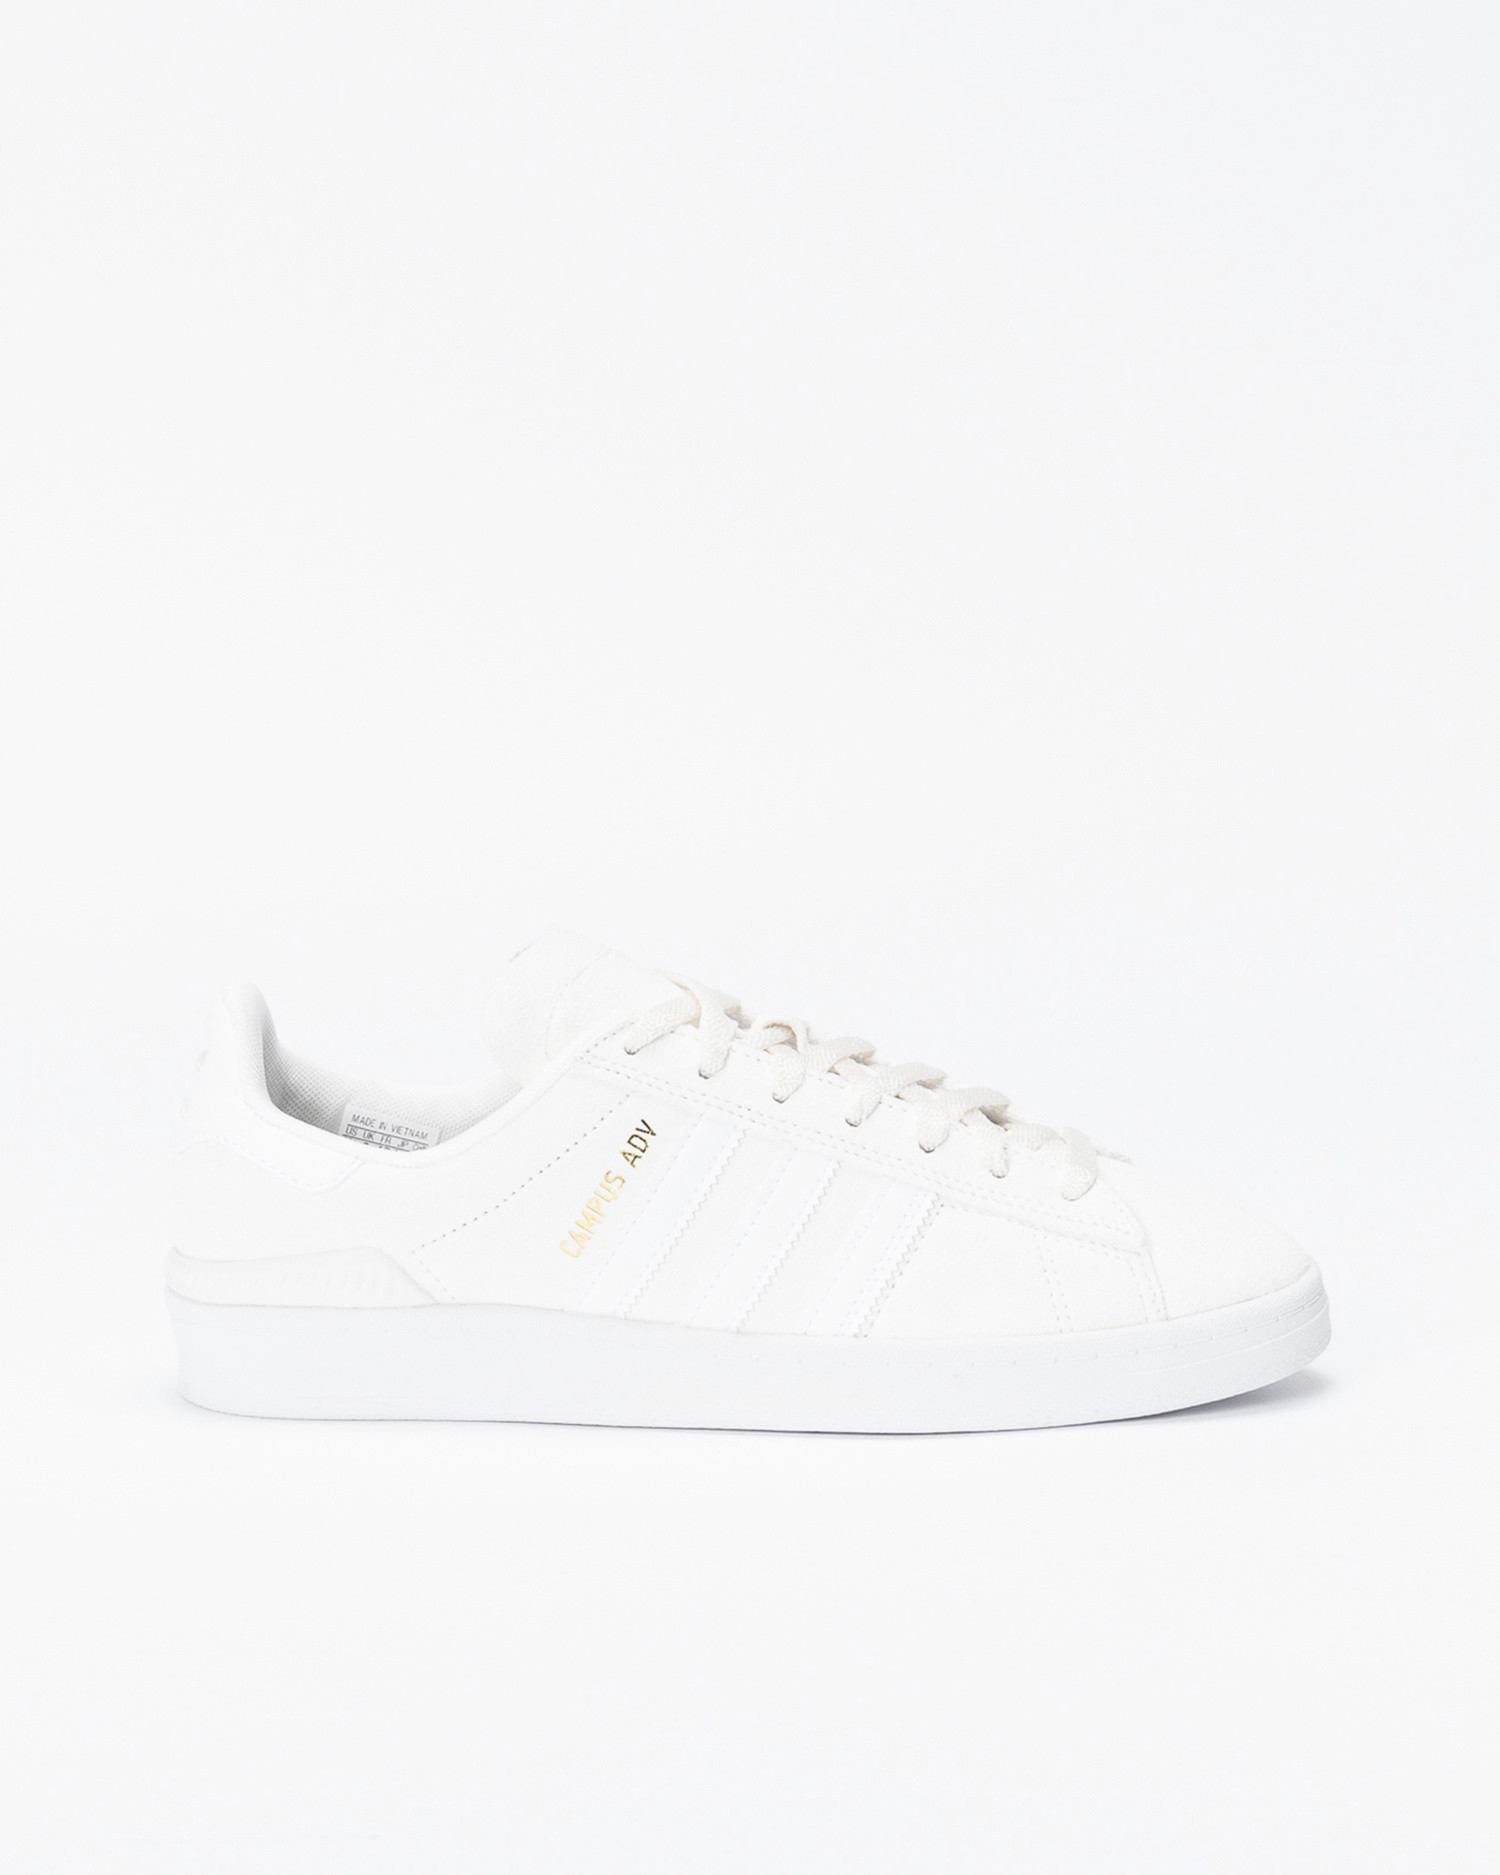 Adidas Campus ADV Supcol/Footwear White/Gold Mettalic